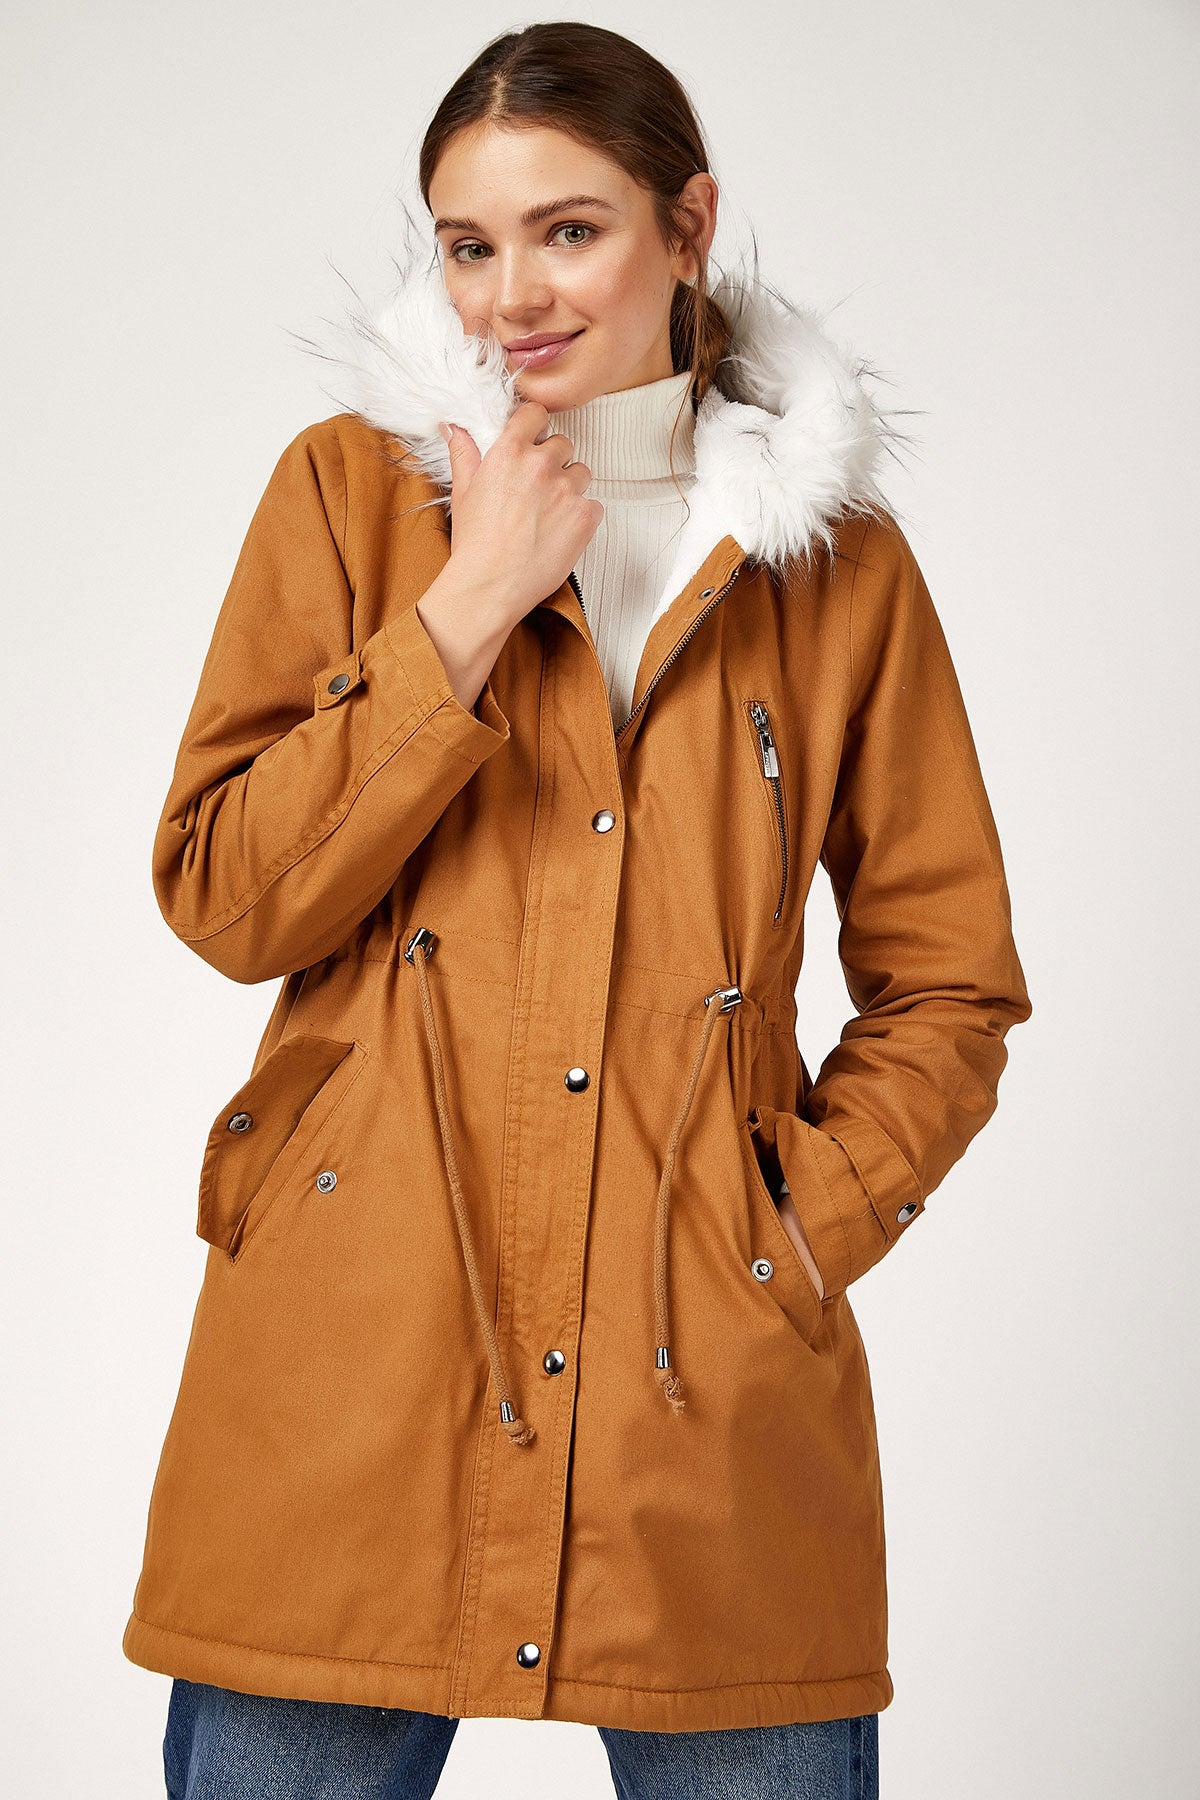 Women's Furry Hooded Brown Coat